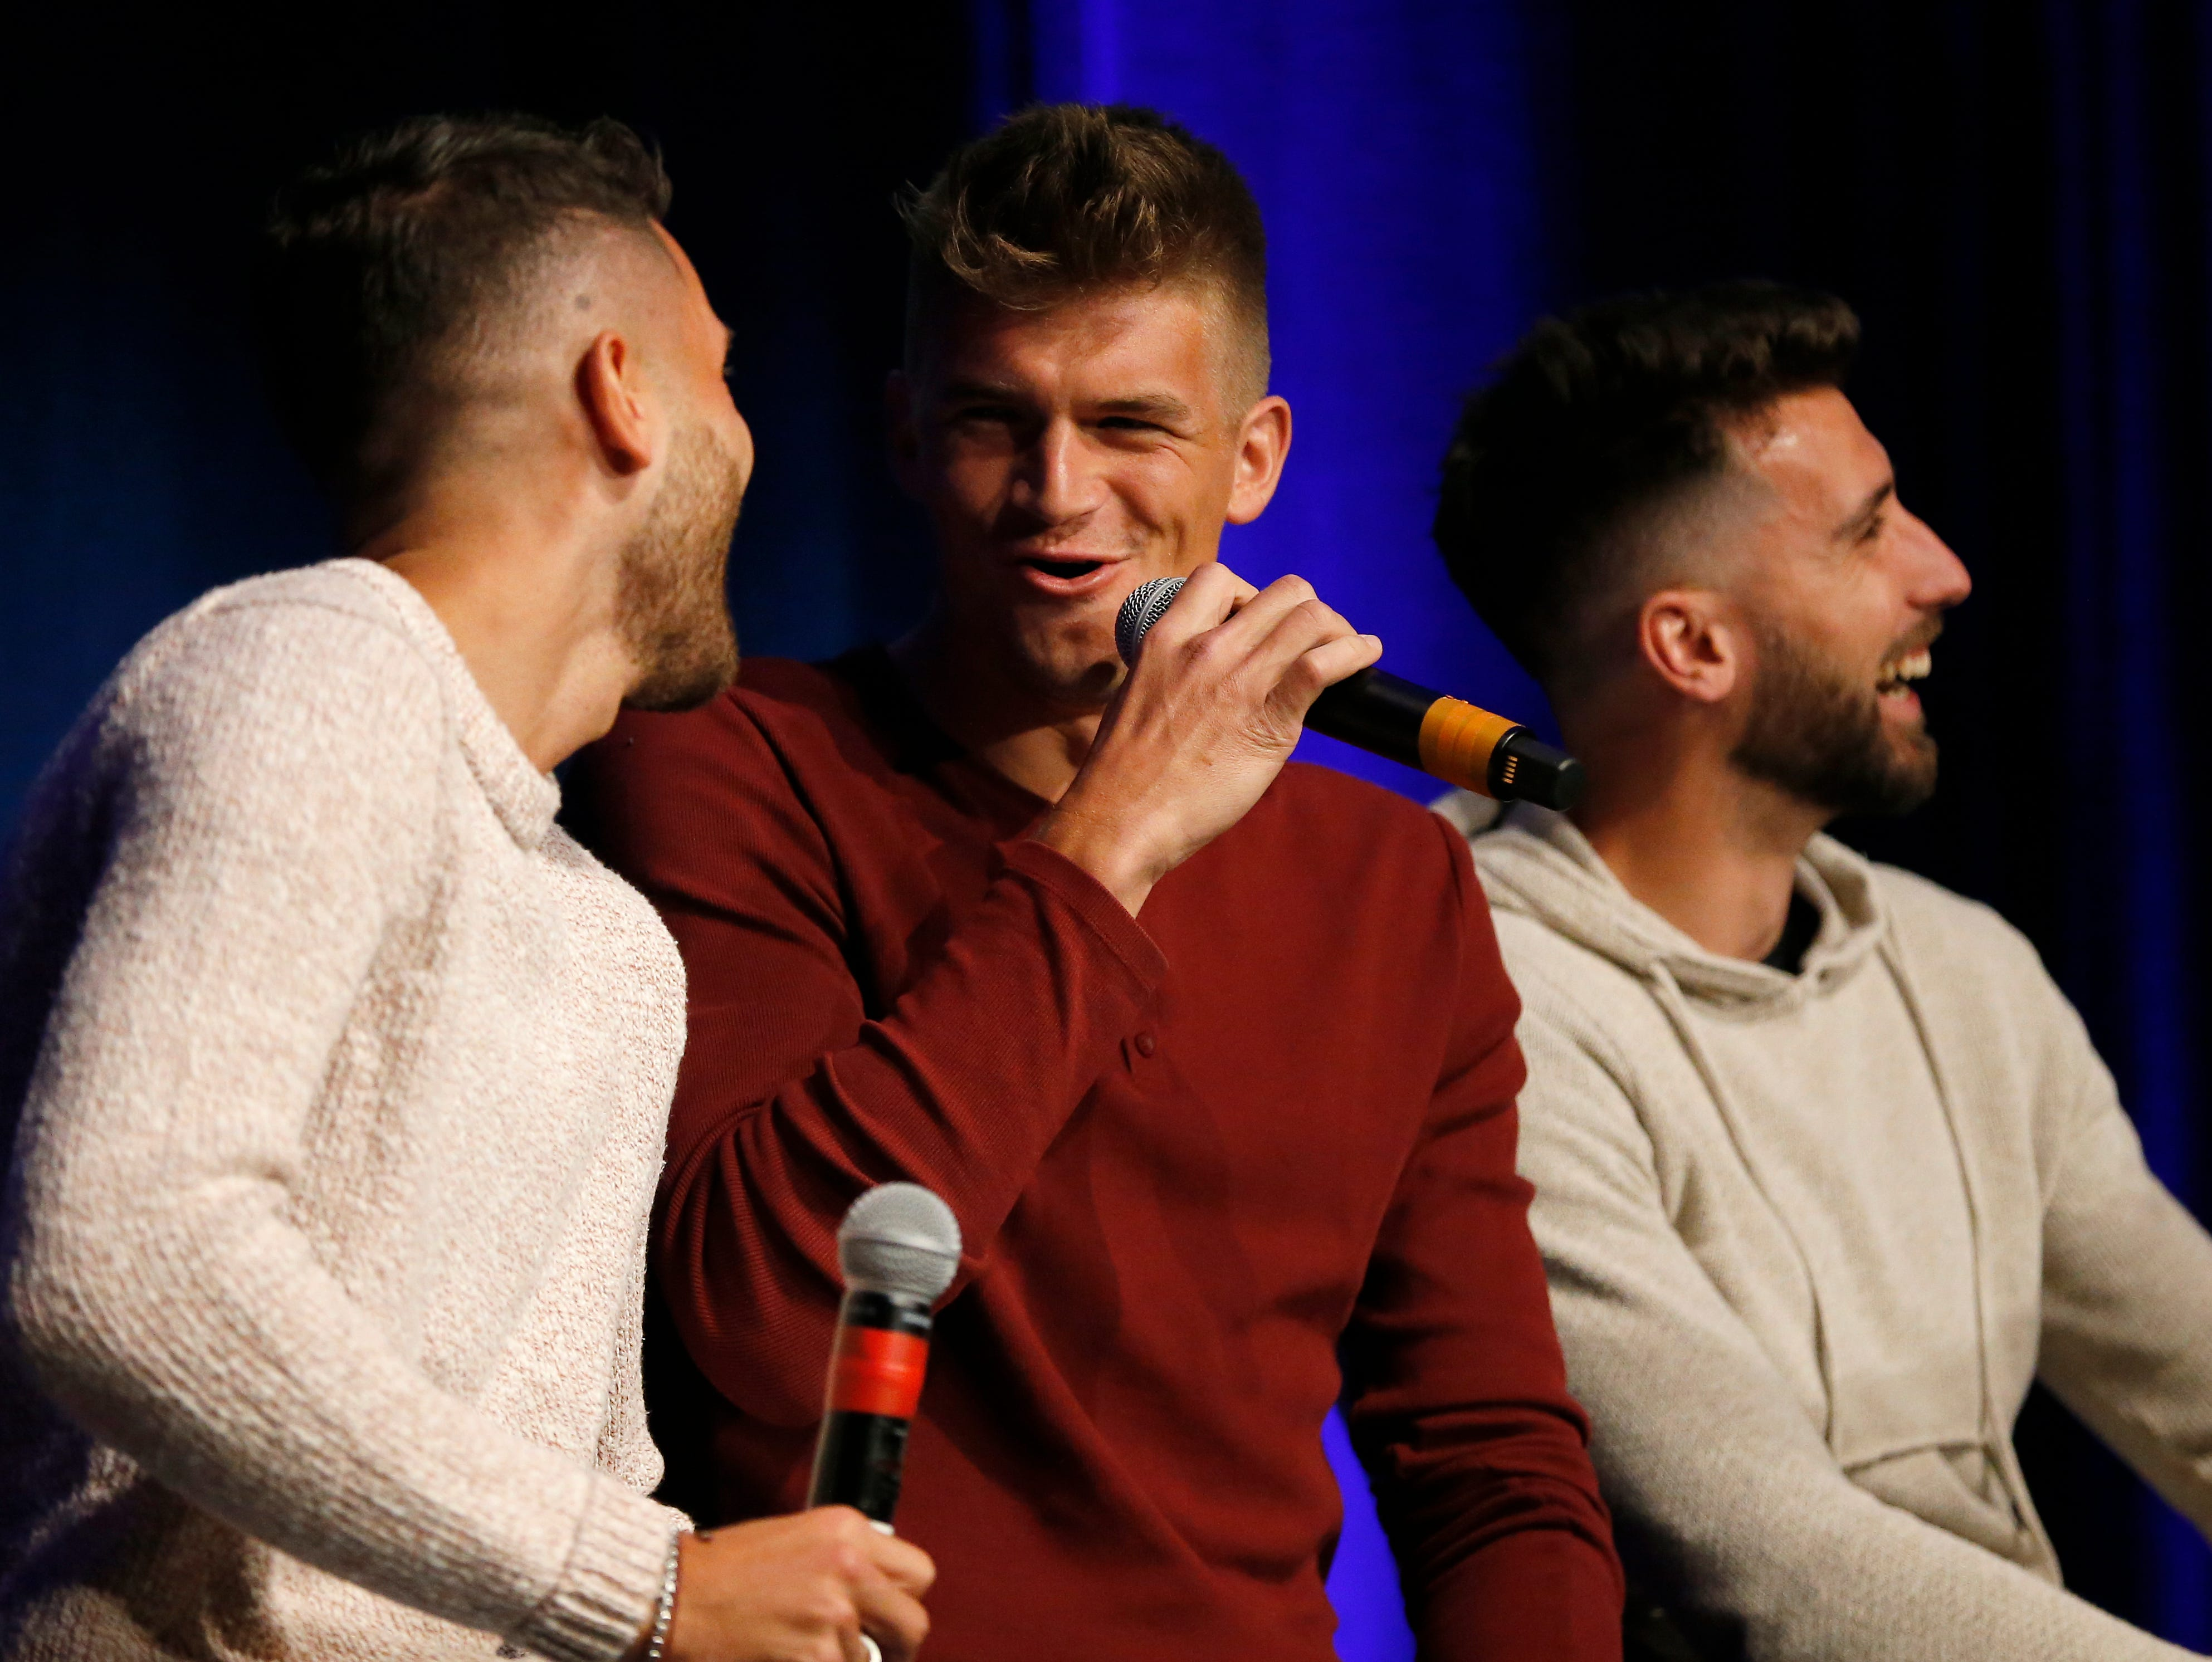 Nick Hagglund laughs with teammate Greg Garza during an event to unveil FC Cincinnati's jersey for the team's inaugural season in Major League Soccer at the Music Hall Ballroom in the Over-the-Rhine neighborhood of Cincinnati on Monday, Feb. 11, 2019.